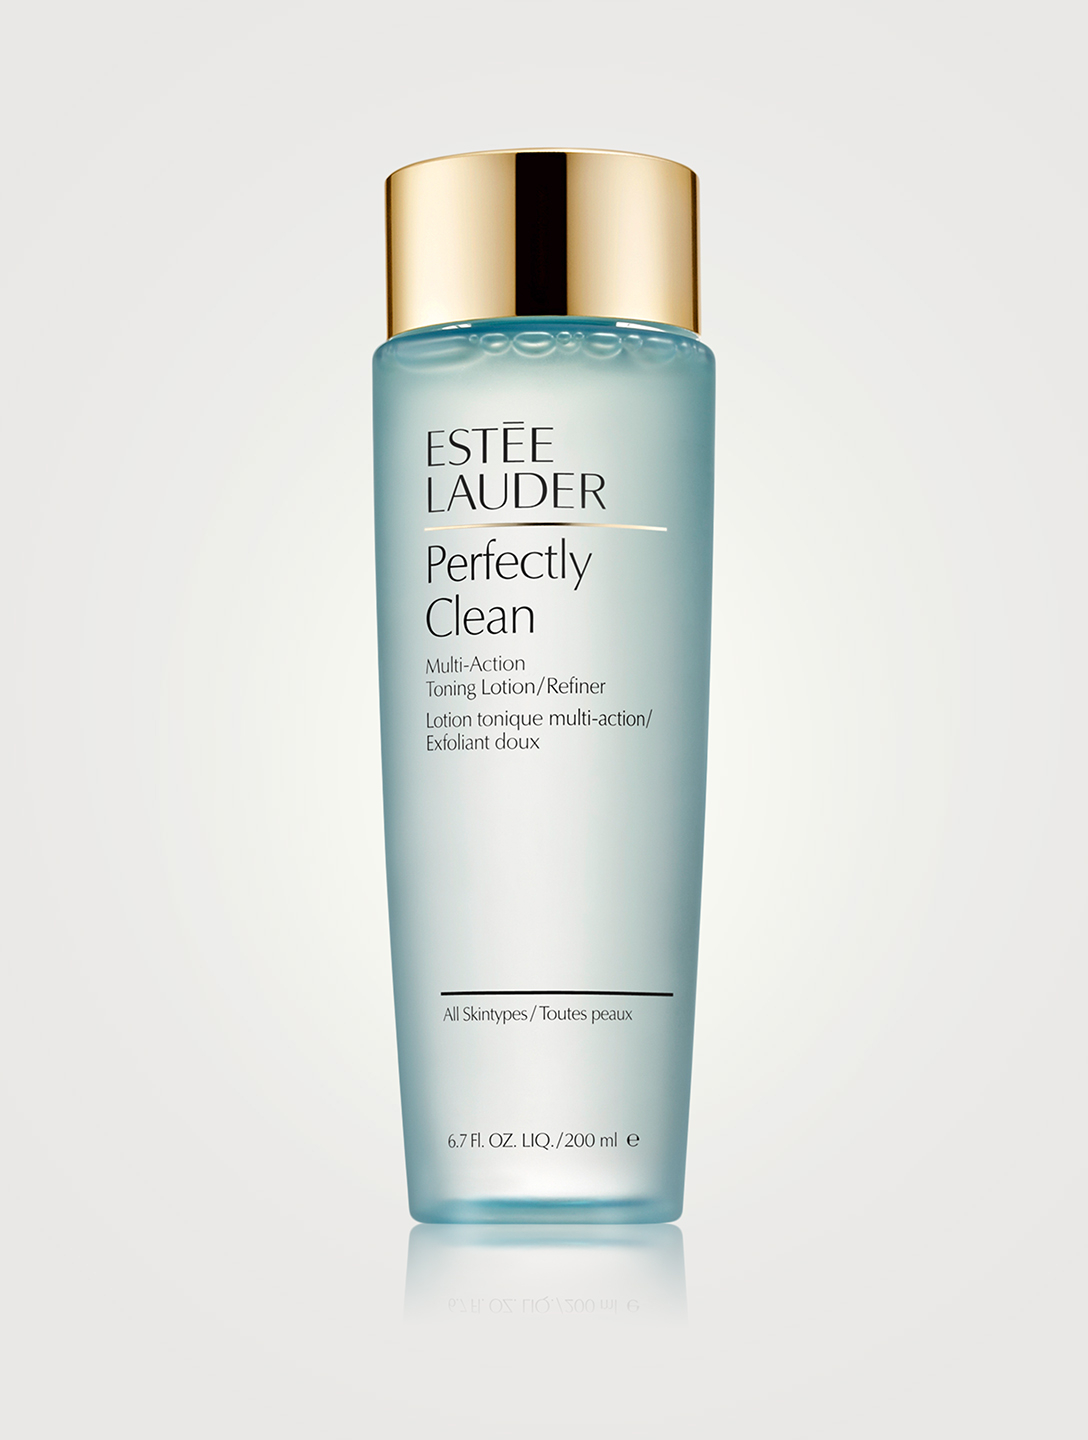 ESTÉE LAUDER Perfectly Clean Multi-Action Toning Lotion/Refiner Beauty